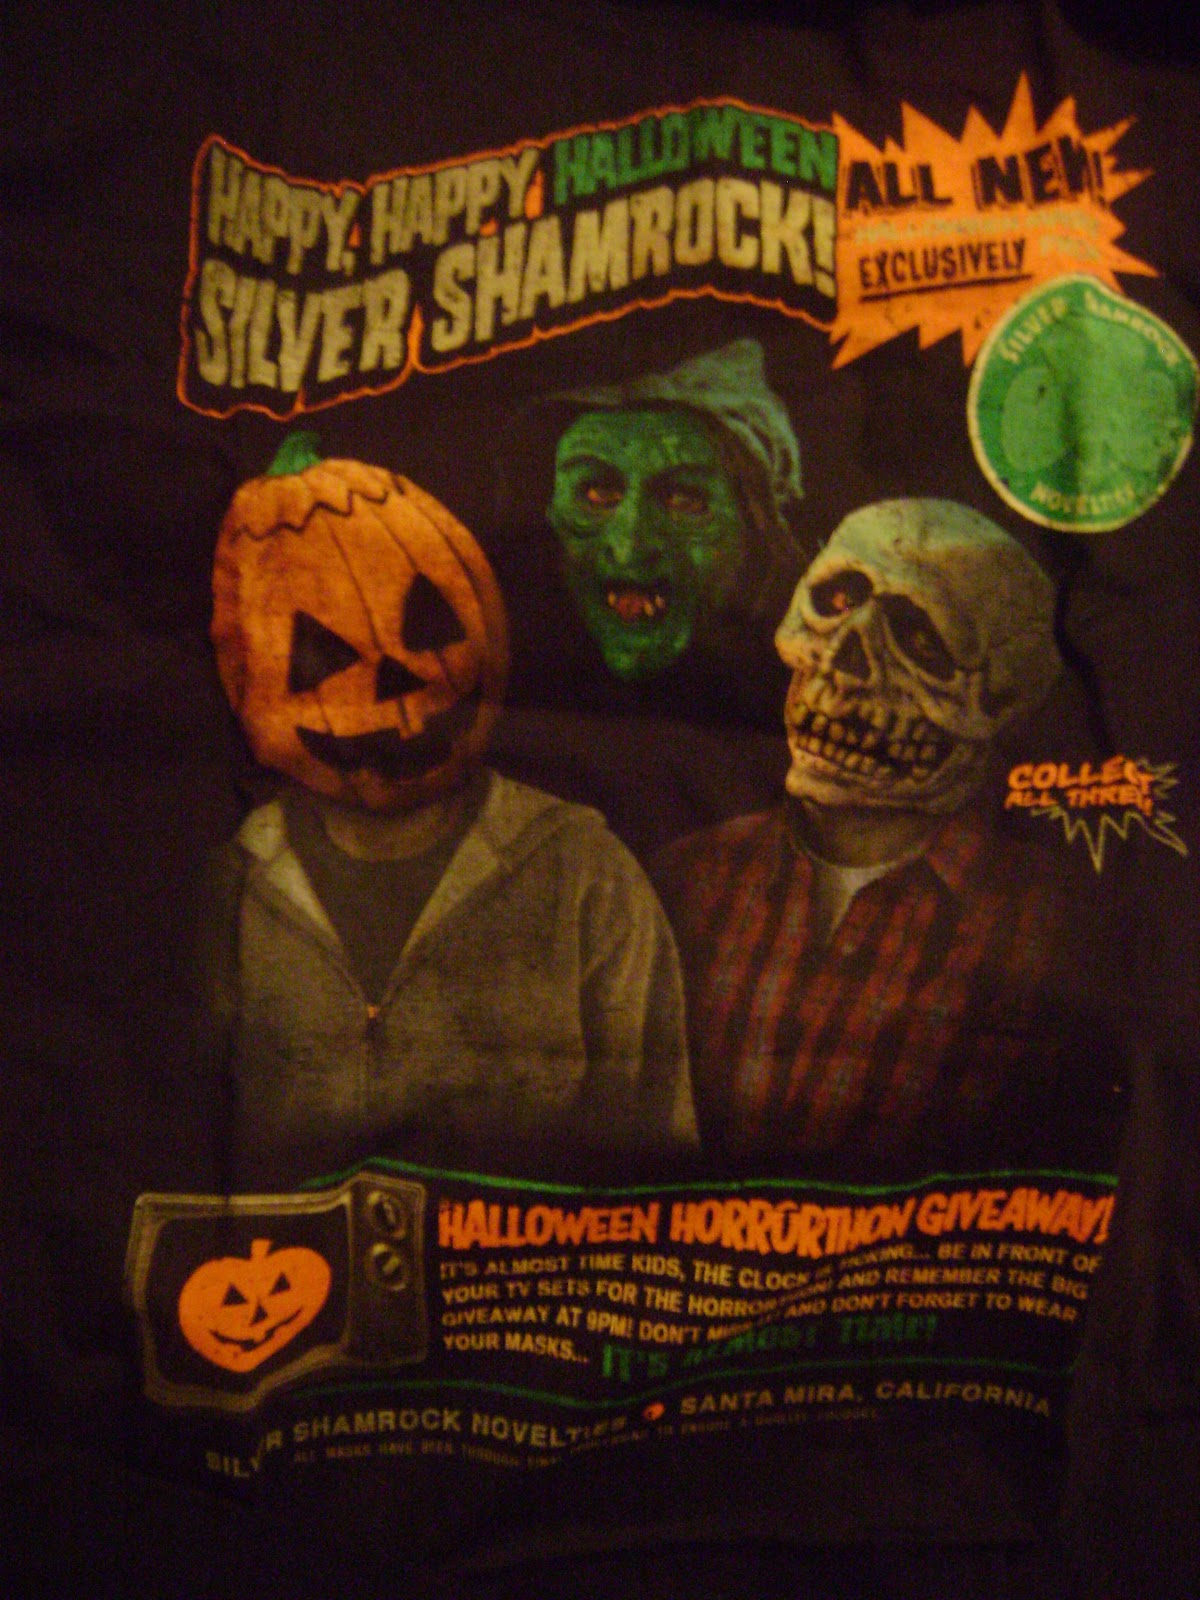 i plan on rocking this wonderful shirt next convention i go to now all i need is that pumpkin maskhumm